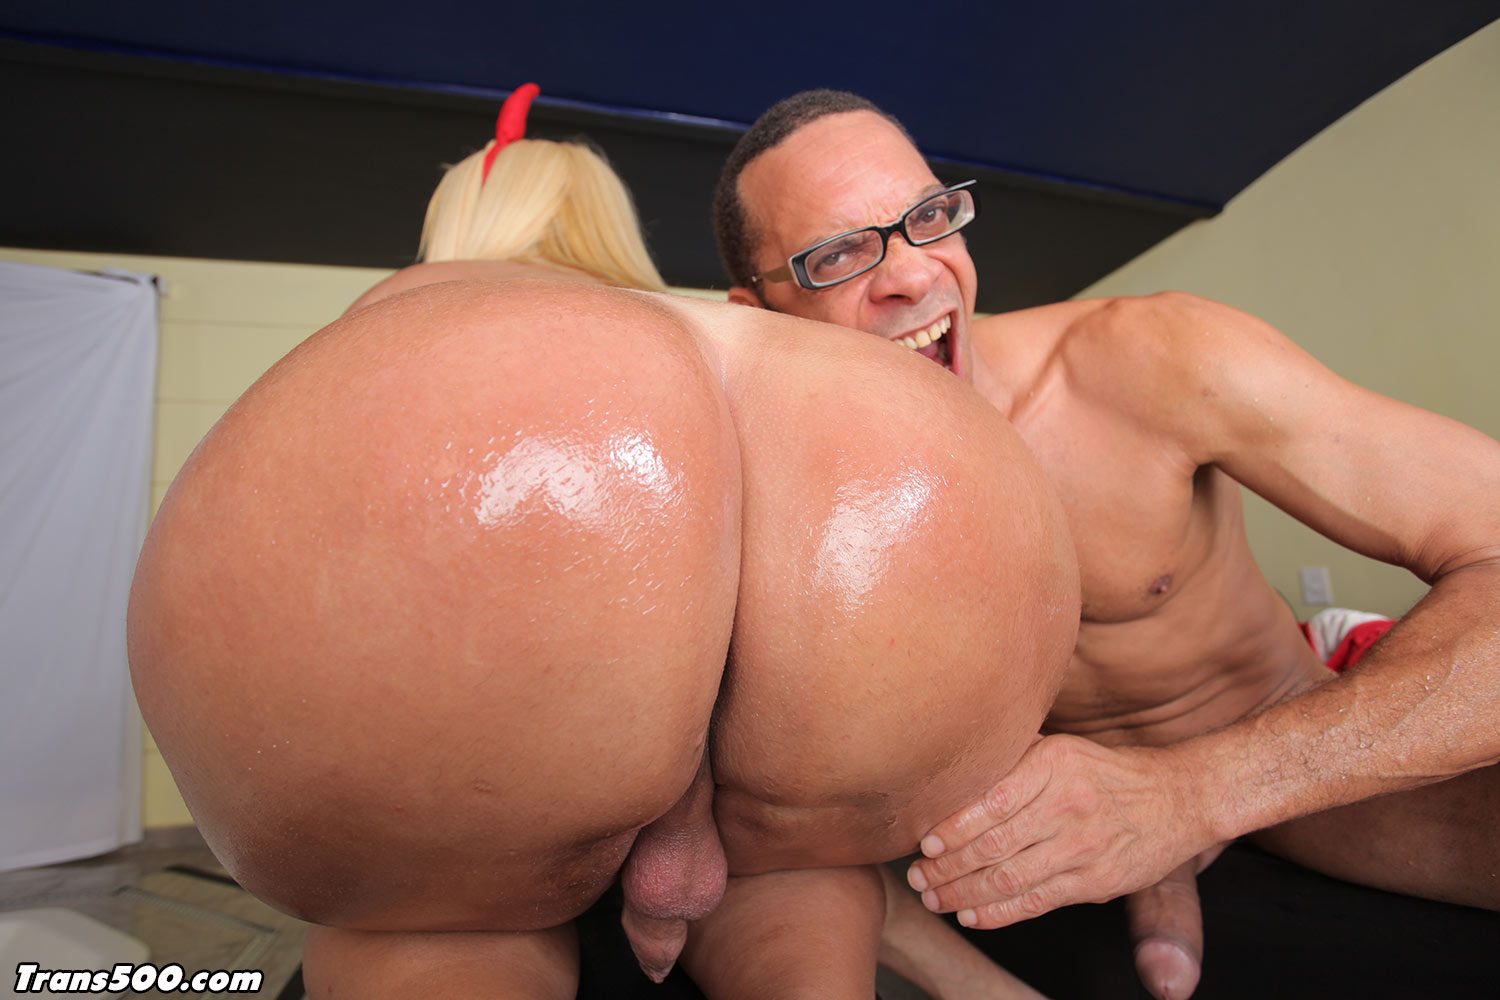 Porn Big Ass And Big Cock